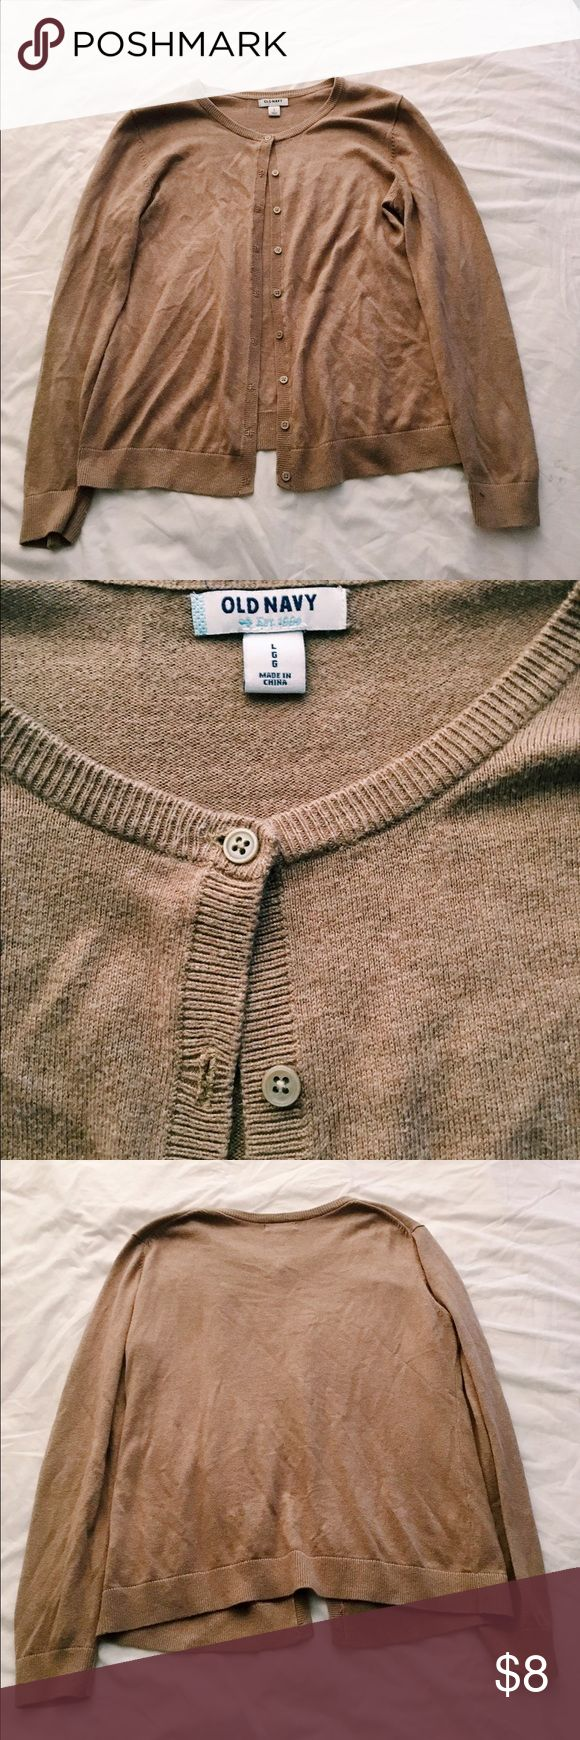 Tan cardigan Comfortable and stylish cardigan that goes great with any outfit! Only worn a few times. Sweaters Cardigans